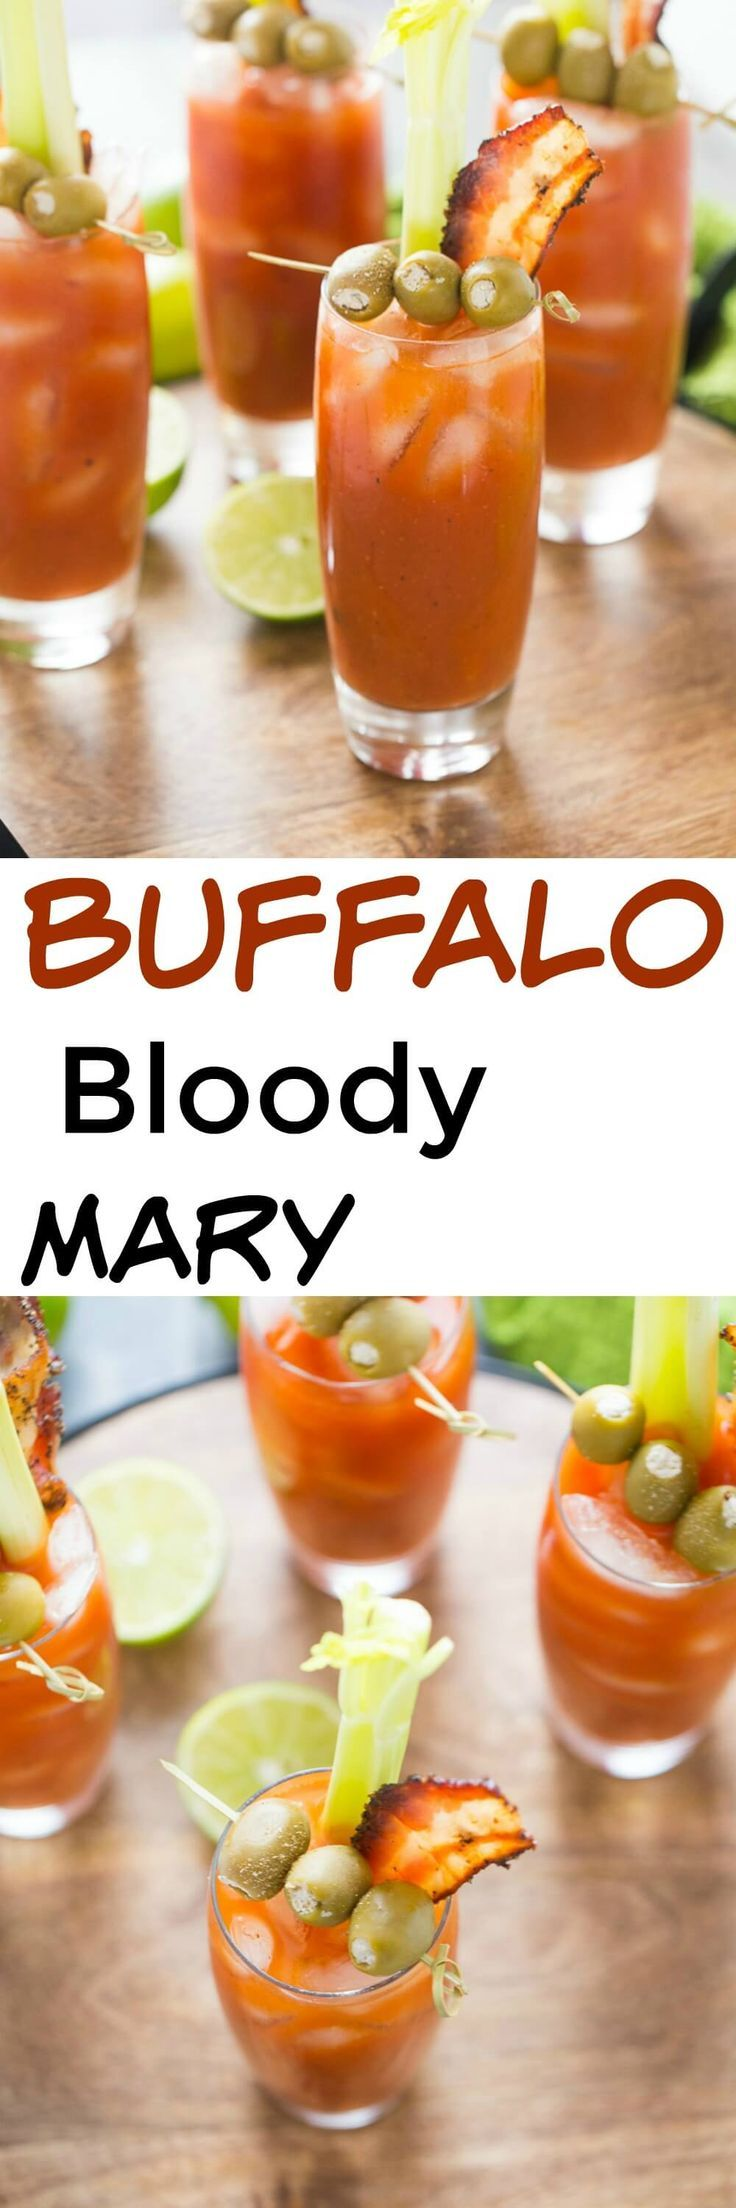 This bloody Mary is one of a kind! Spicy Buffalo sauce is mixed into each cocktail. Finish these drinks off with blue cheese stuffed olives and peppery bacon! lemonsforlulu.com via @Lemonsforlulu